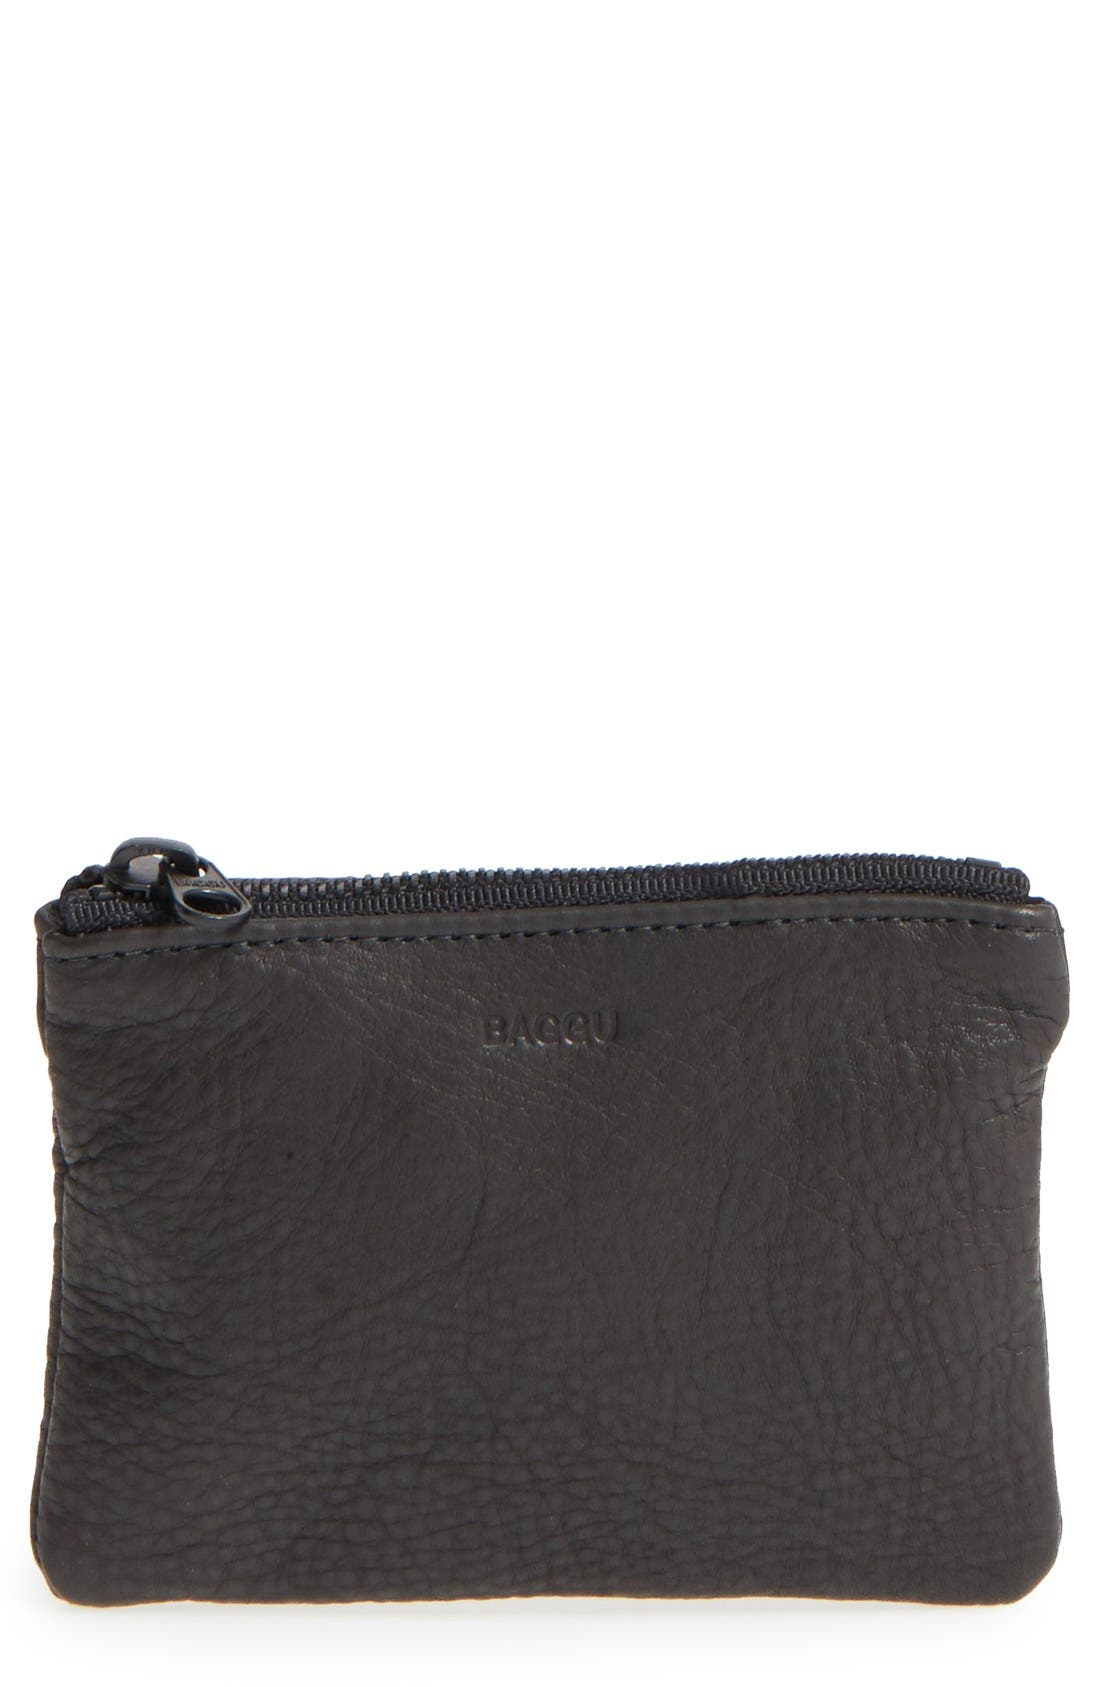 Baggu Leather Zip Pouch